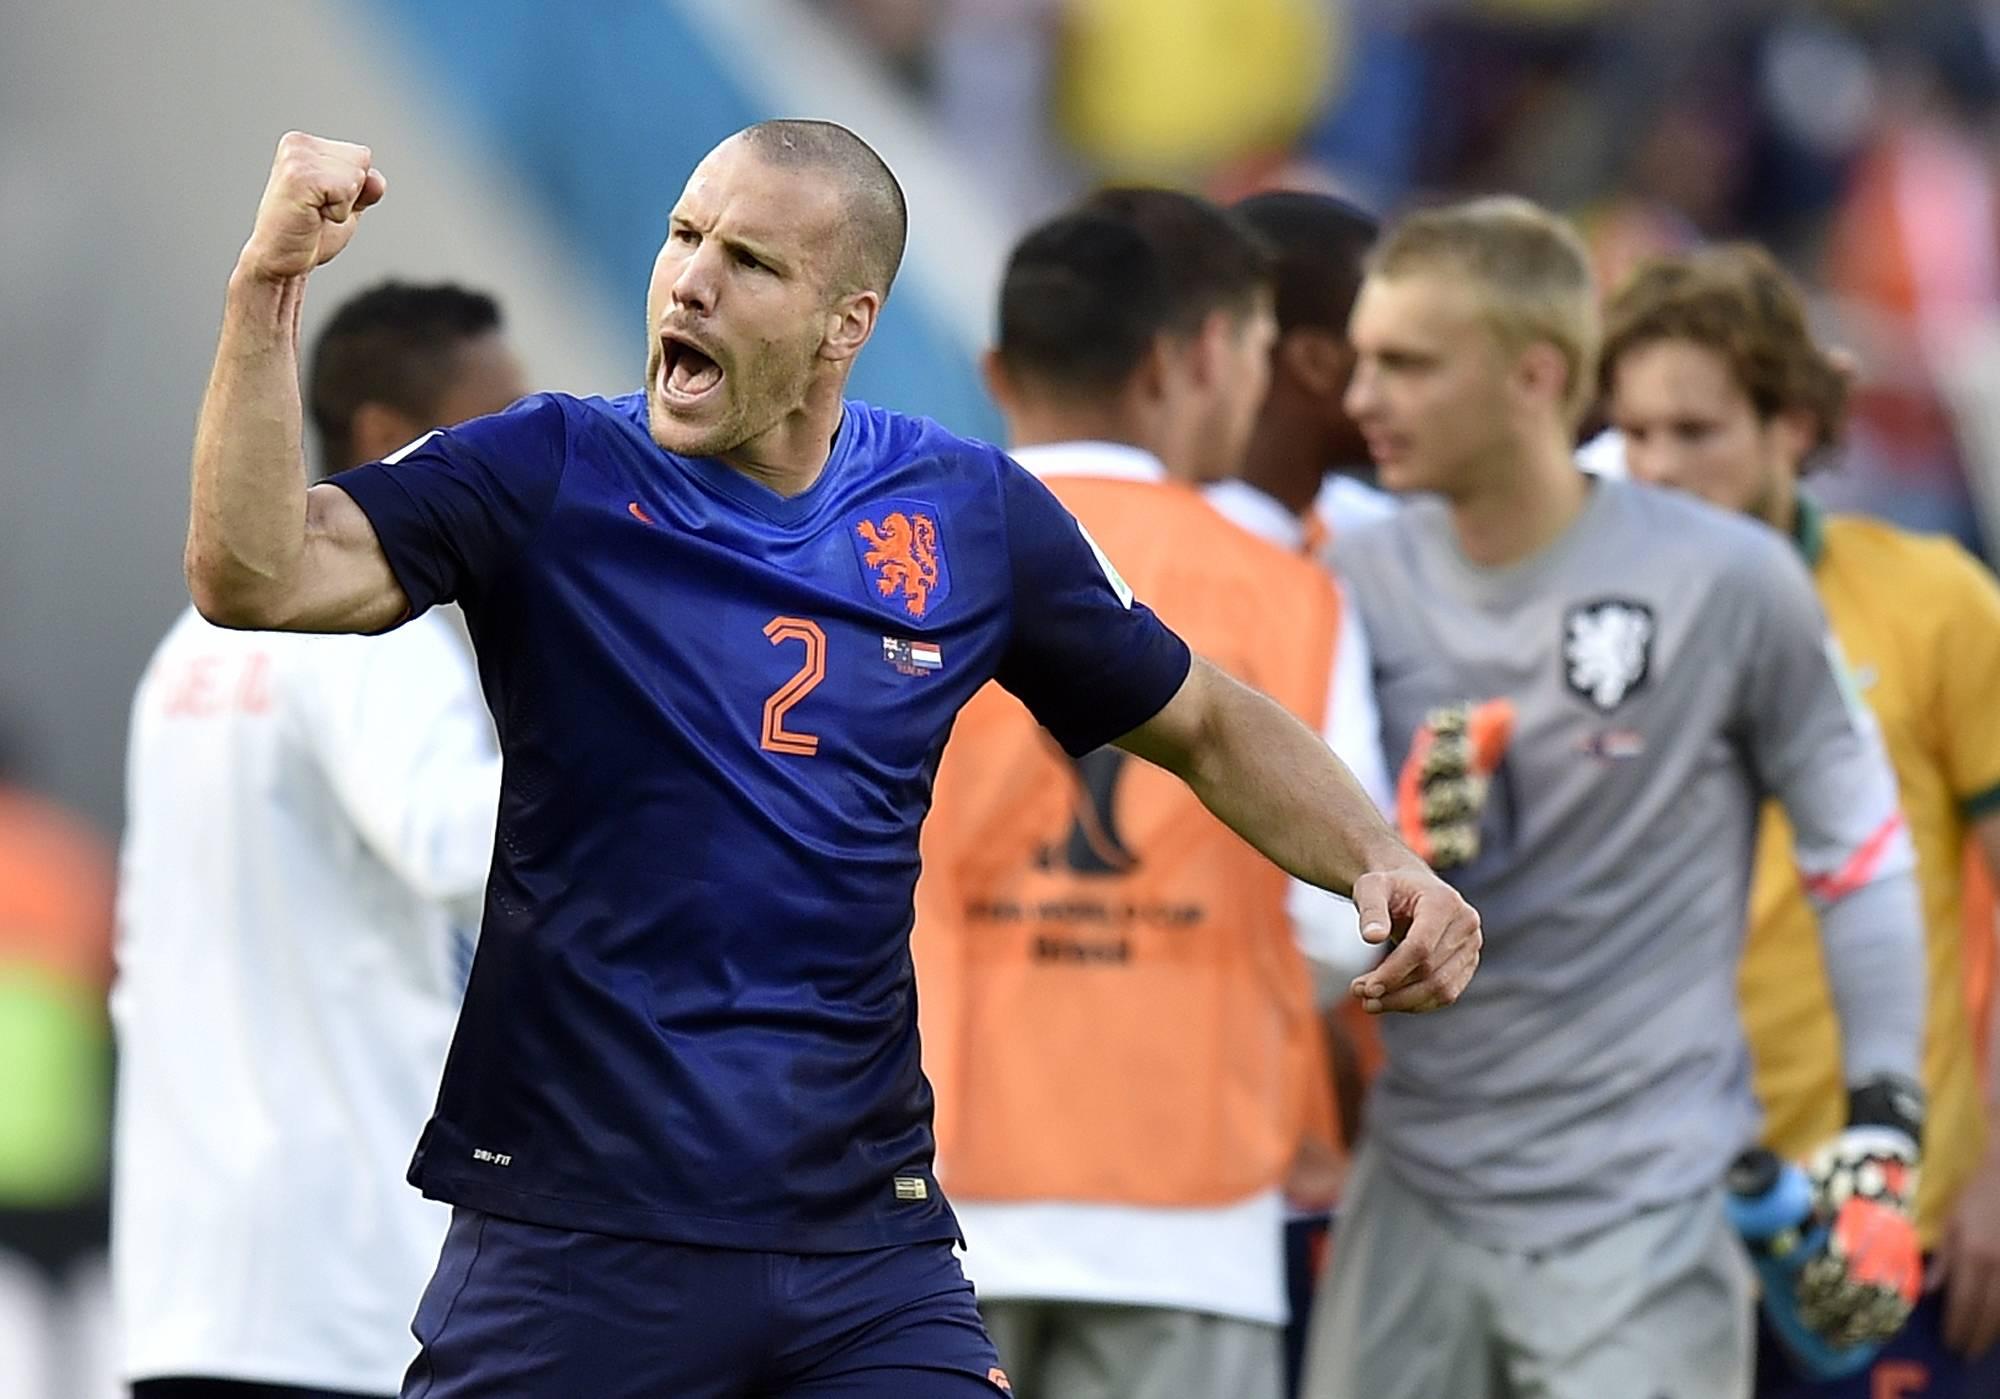 Netherlands' Ron Vlaar celebrates after the group B World Cup soccer match between Australia and the Netherlands at the Estadio Beira-Rio in Porto Alegre, Brazil, Wednesday, June 18, 2014.  The Netherlands won the match 3-2.